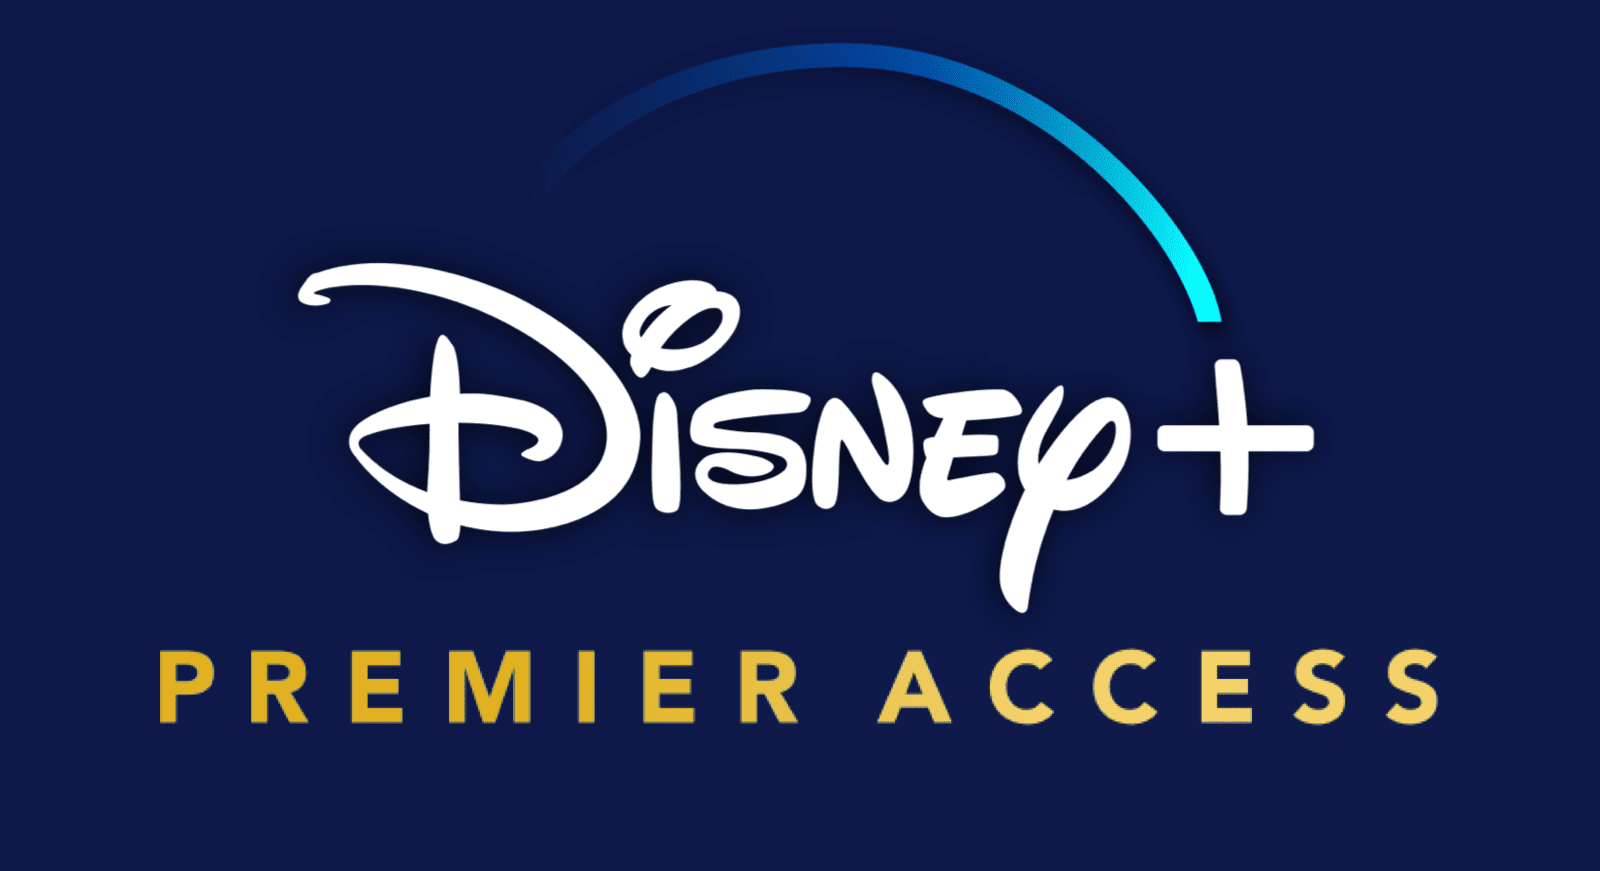 Disney Plus Premier Access: Movie List and How It Works